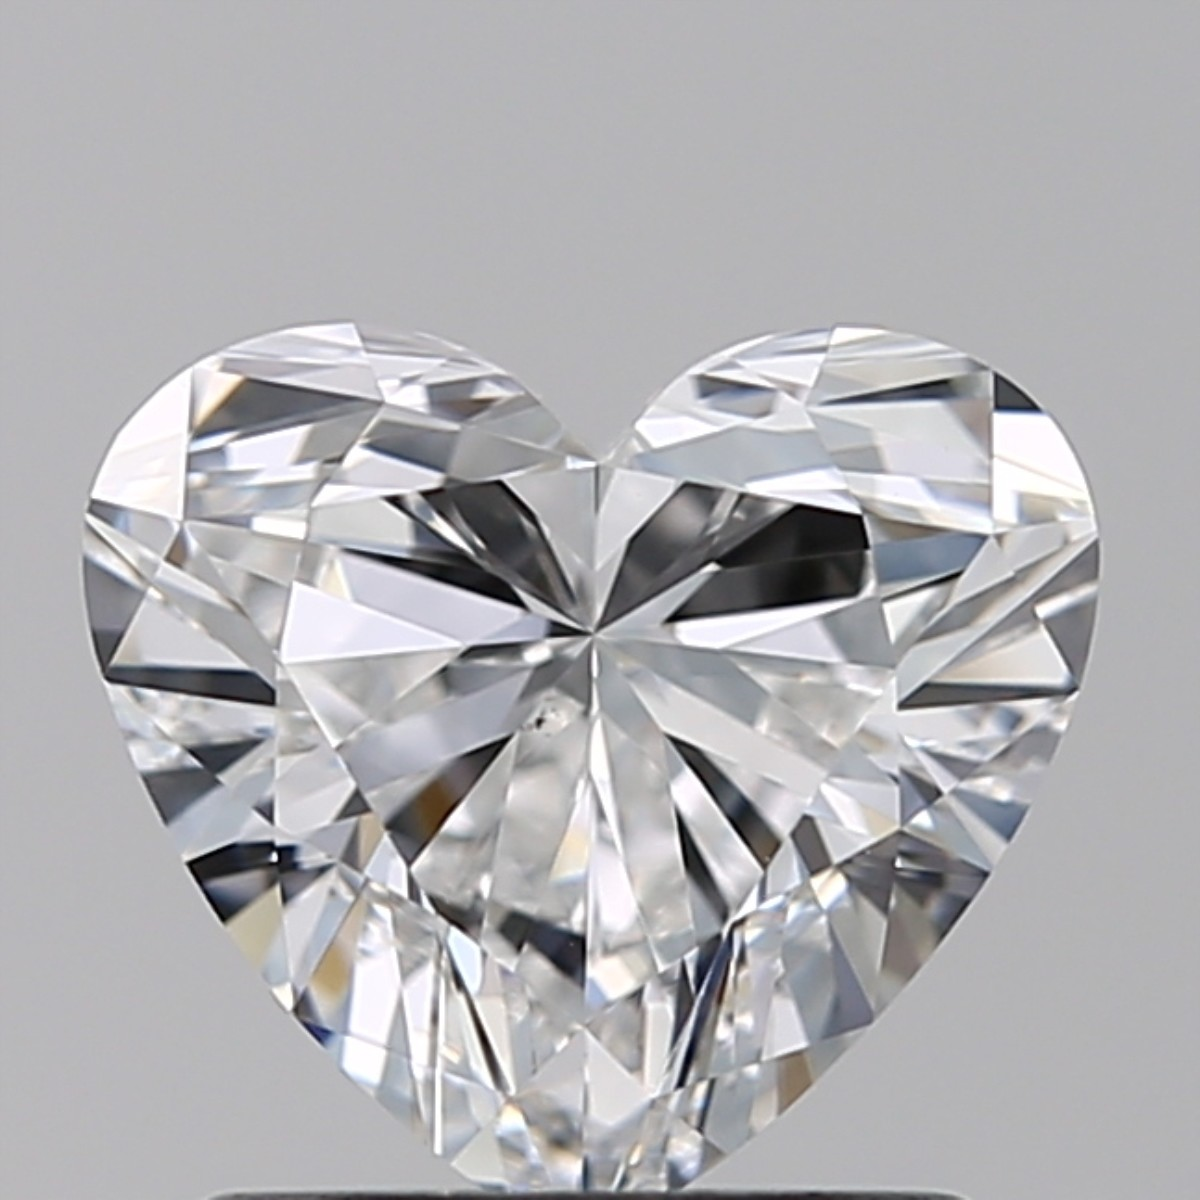 1.03 Carat Heart Diamond (E/VS2)